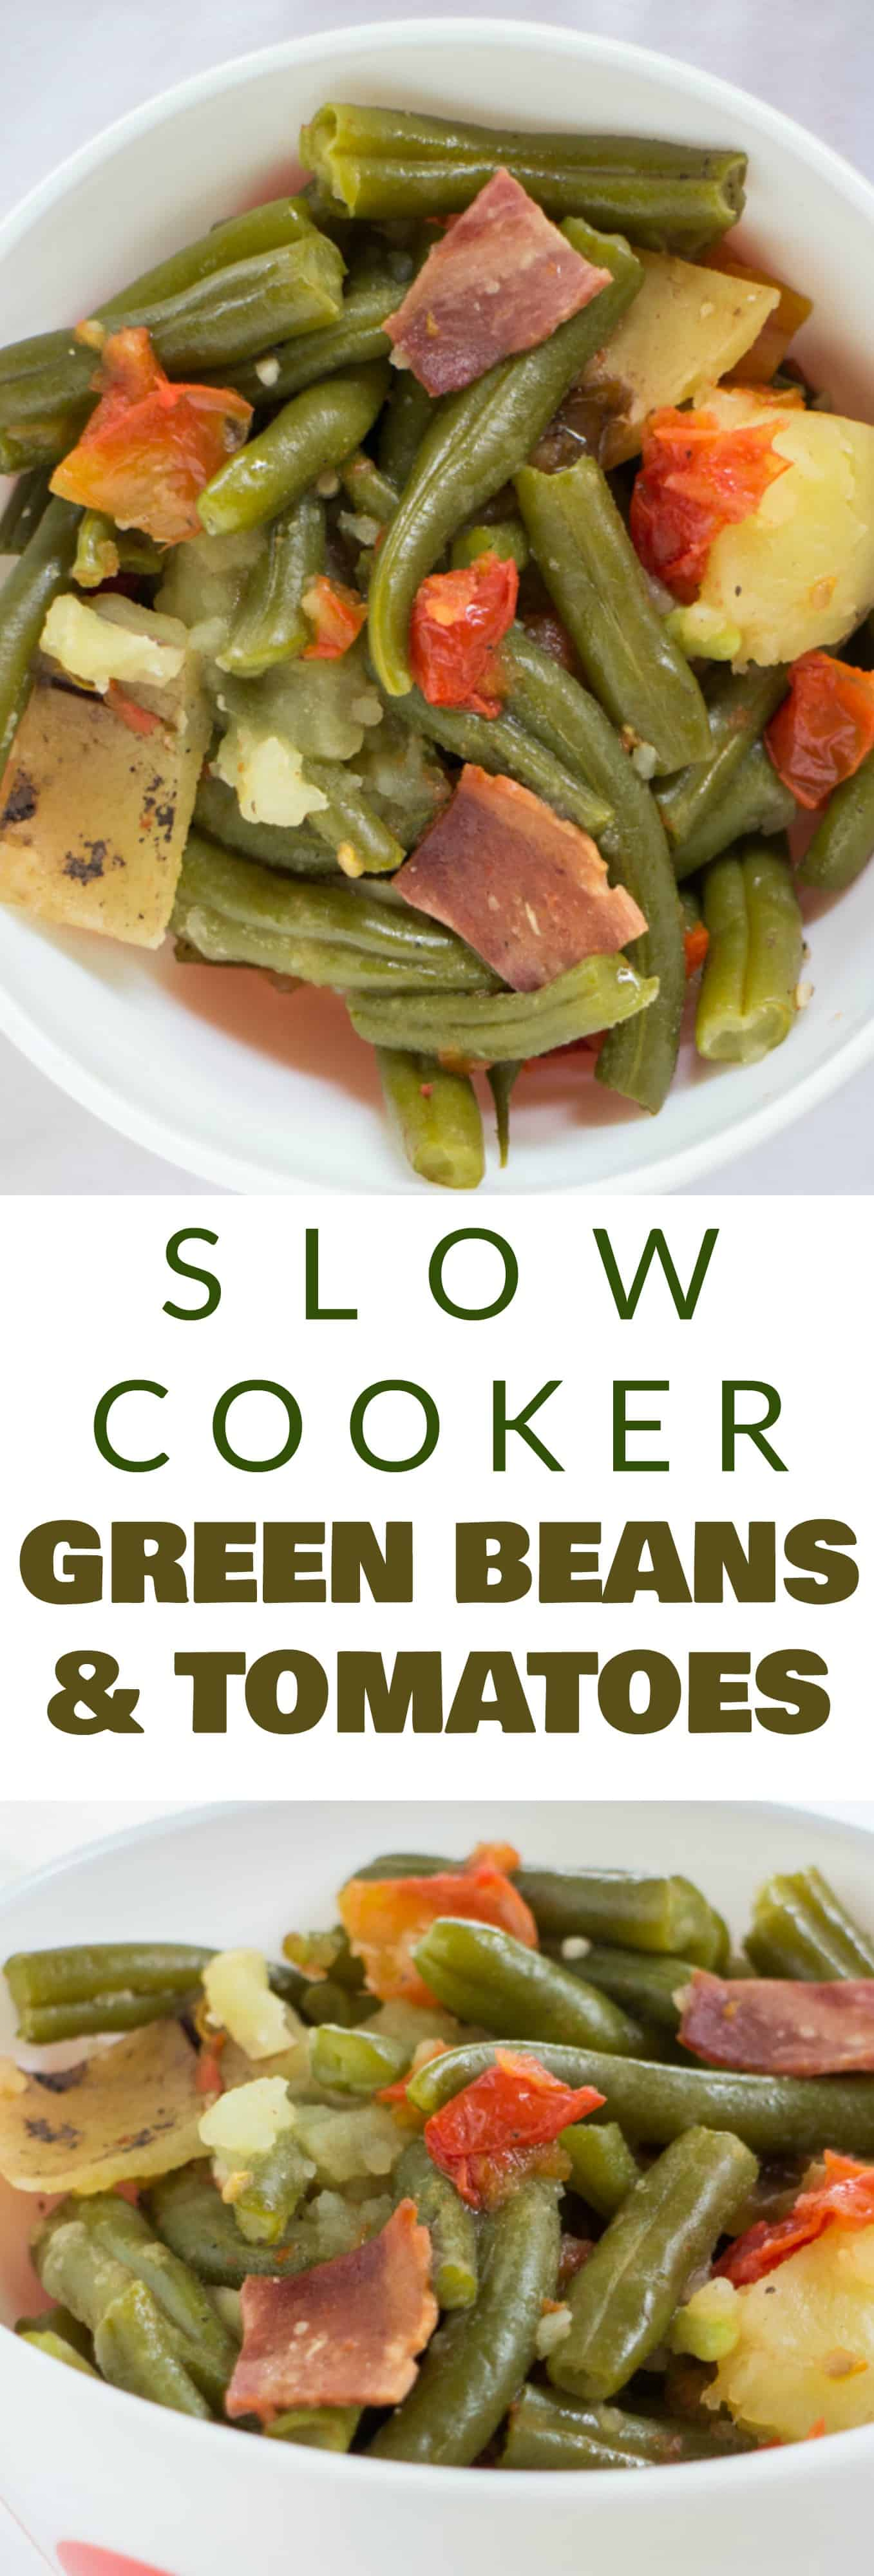 SLOW COOKER Green Beans Recipe with Tomatoes! This easy recipe cooks fresh green beans, tomatoes, potatoes and bacon in a crock pot for 4 hours.  This is a healthy dish makes for delicious vegetable side dishes that you can serve over rice or as a side dish to chicken or Thanksgiving holiday dinners.  This has been become one of families favorite healthy thanksgiving recipes!